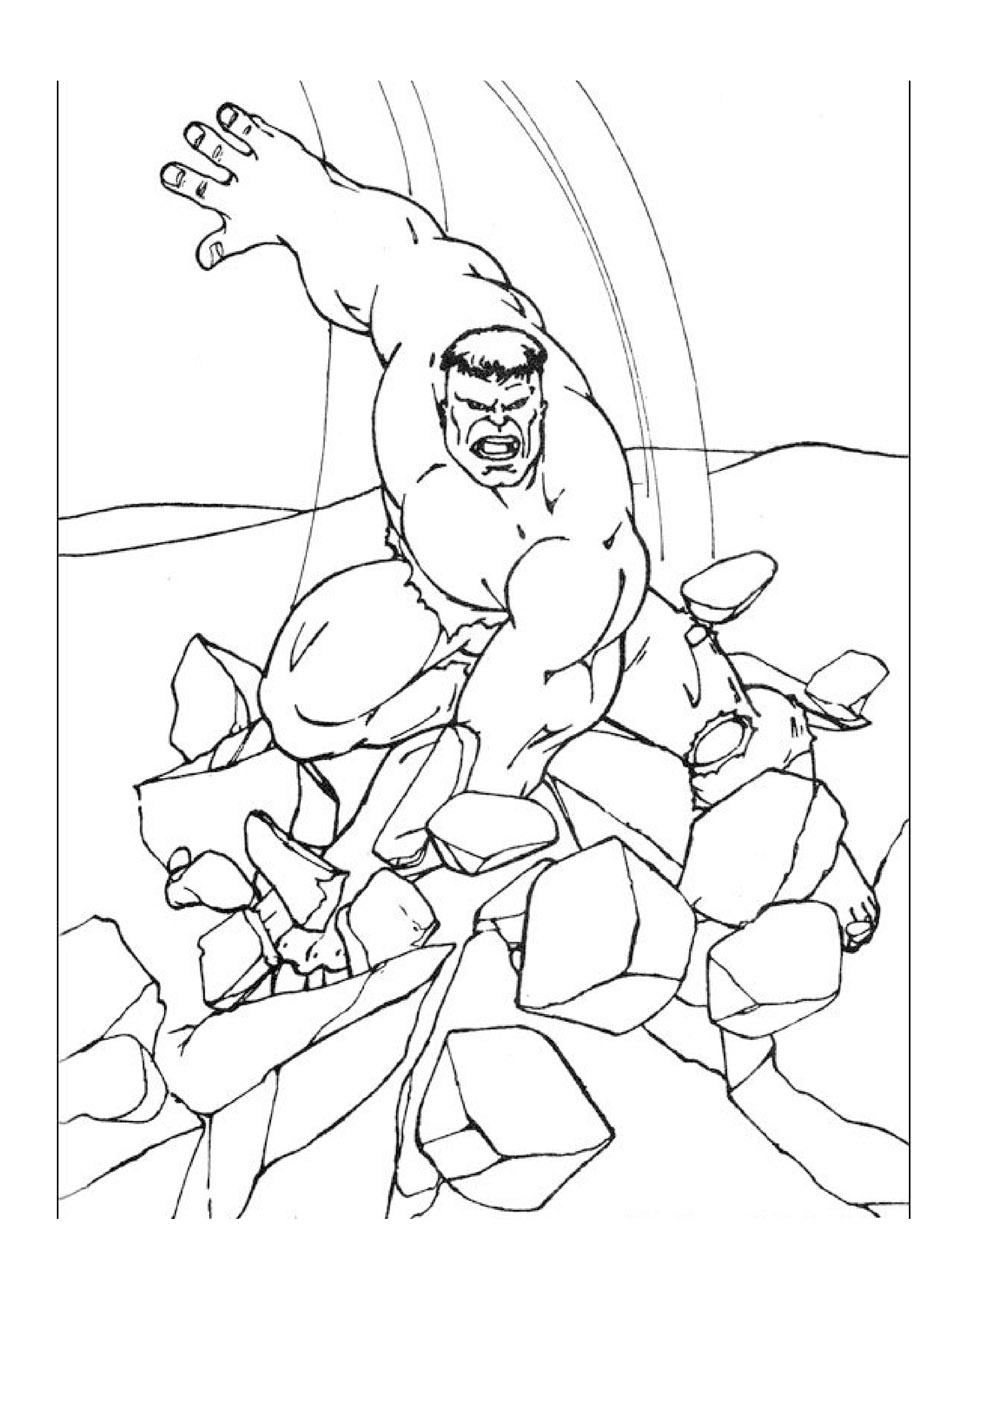 colouring hulk hulk drawing pages at getdrawings free download colouring hulk